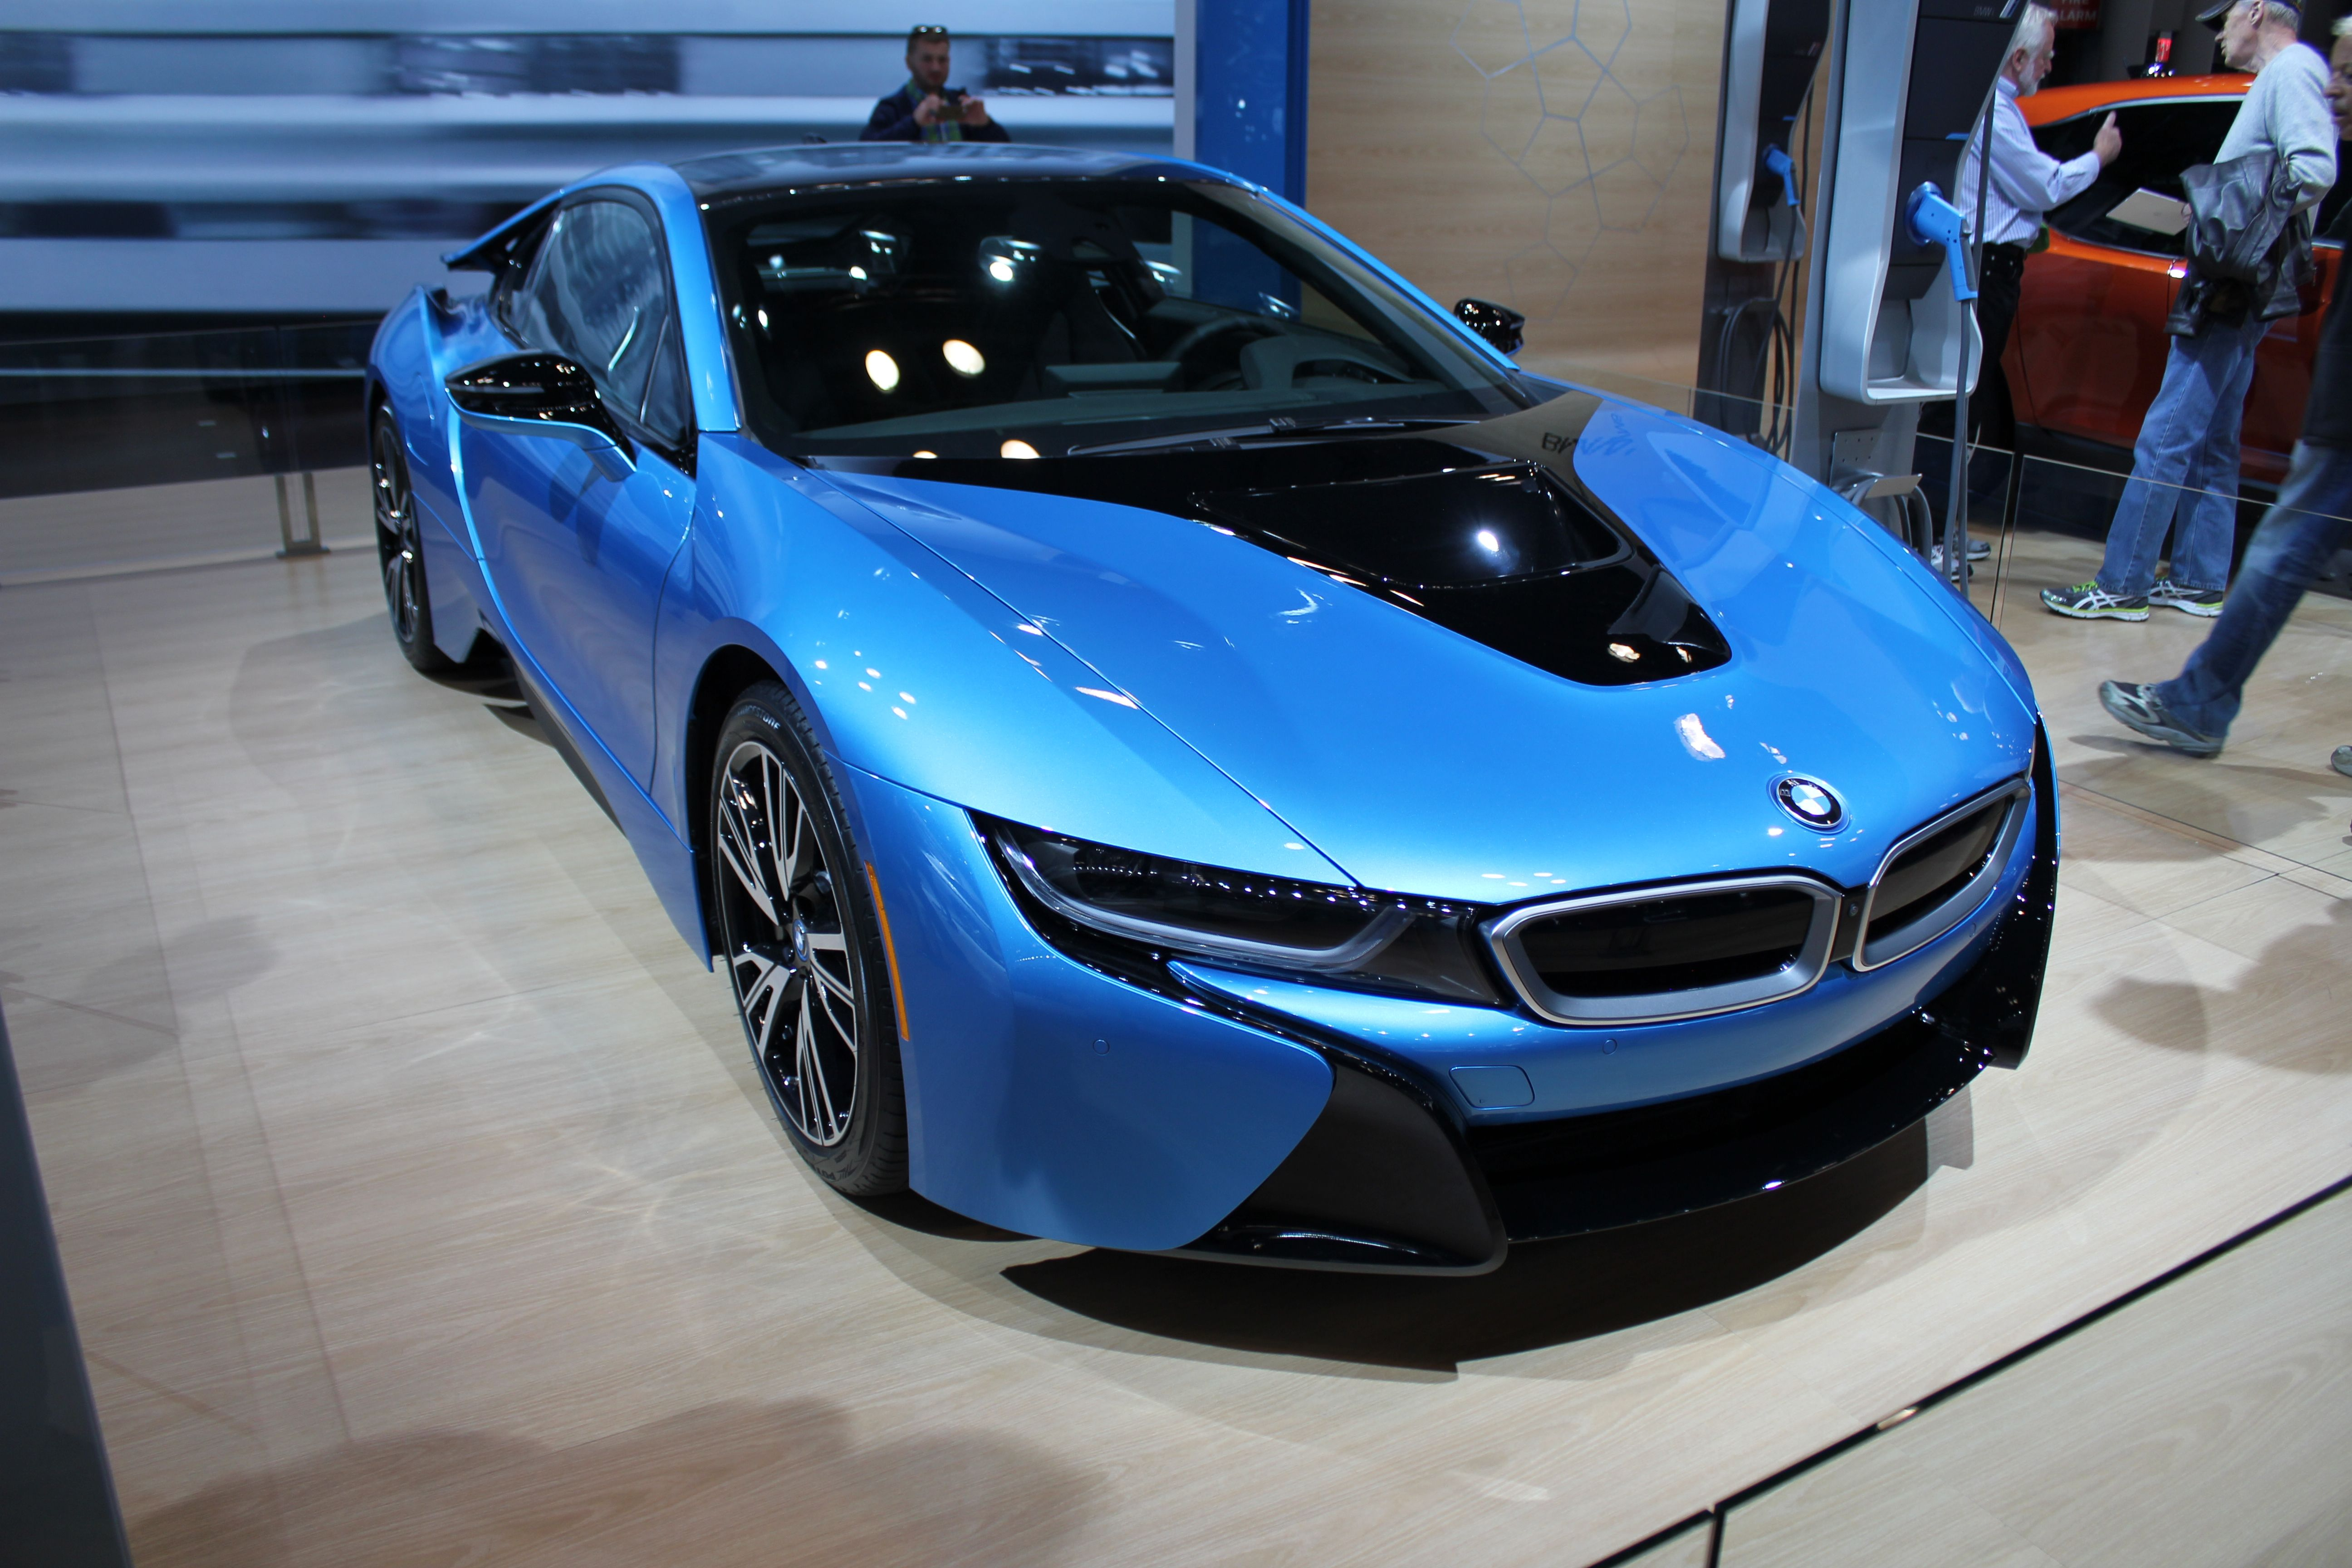 Bmw I 8 Ny Car Show Exotic Cars Pinterest Cars Bmw And Bmw I8